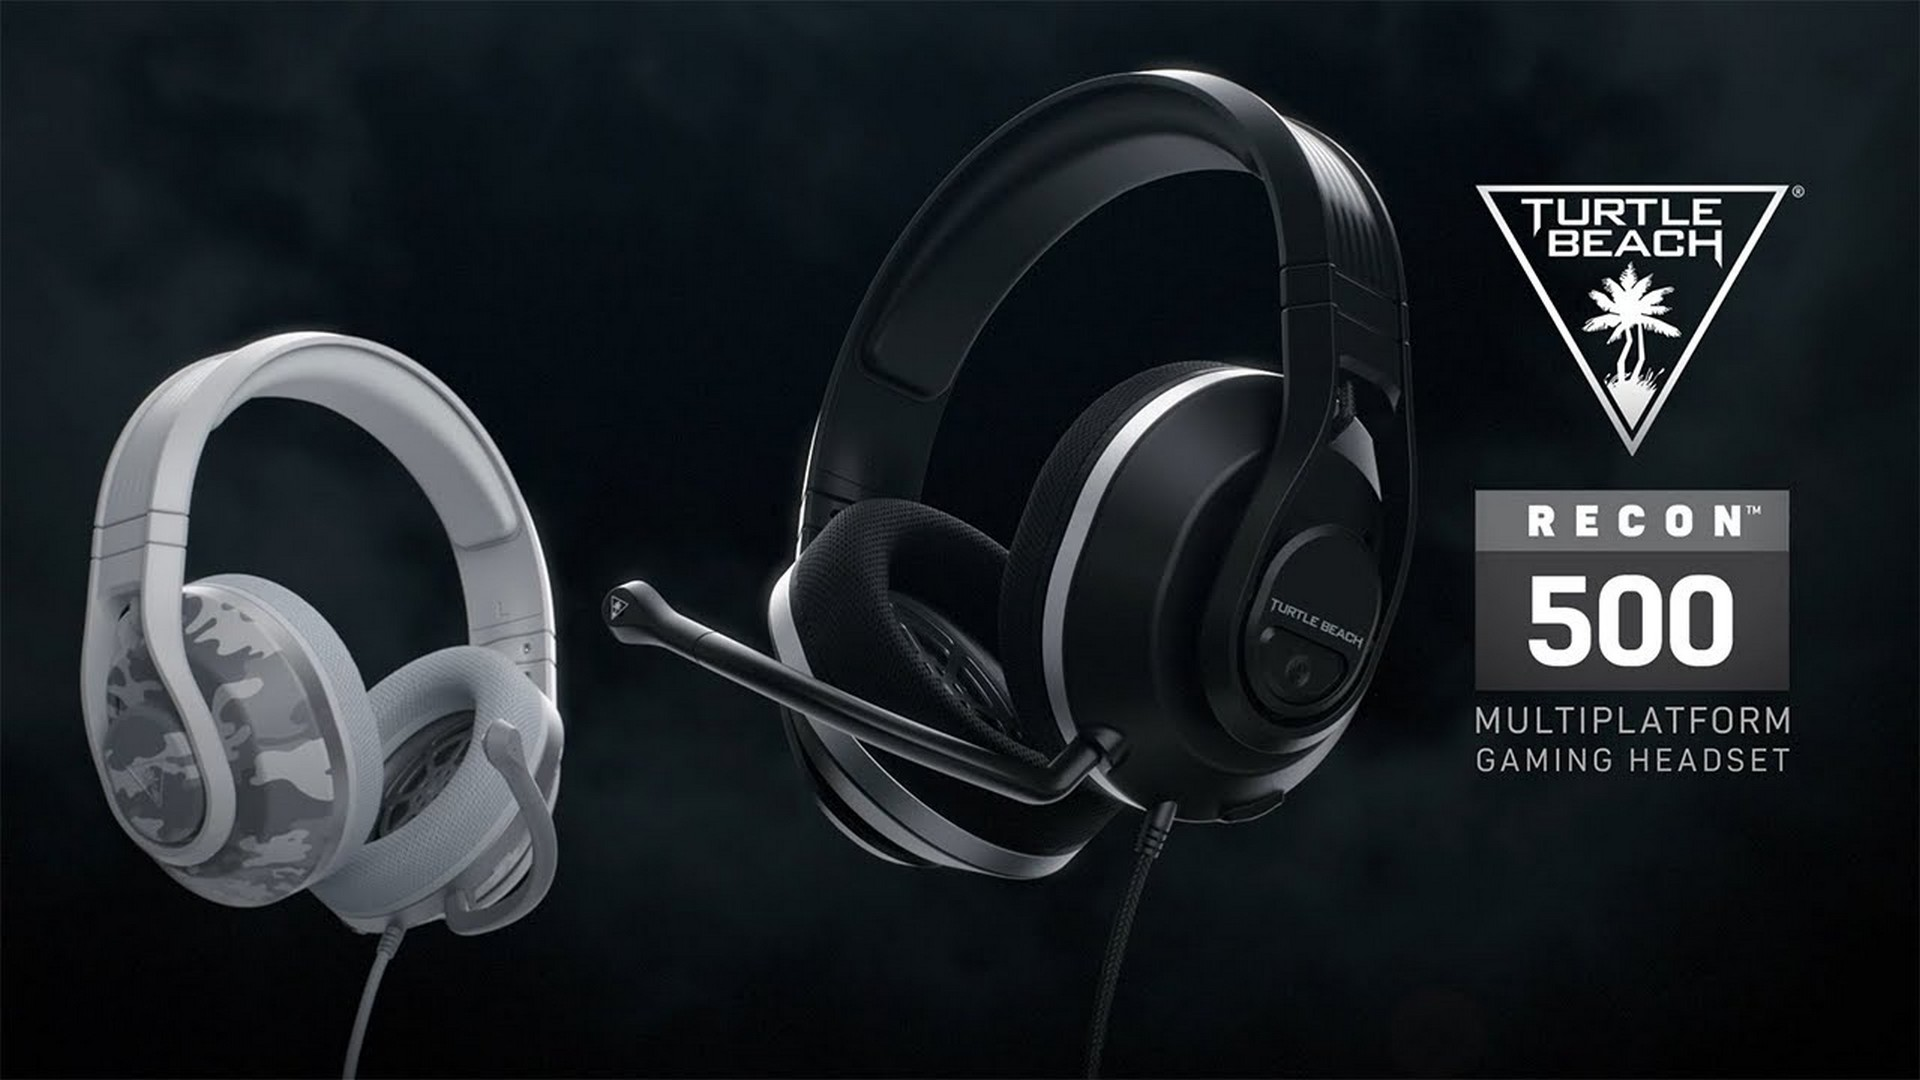 Experience A Revolution In Gaming Audio With Turtle Beach's All-New Recon 500 Gaming Headset – Now Available At Australian Retailers